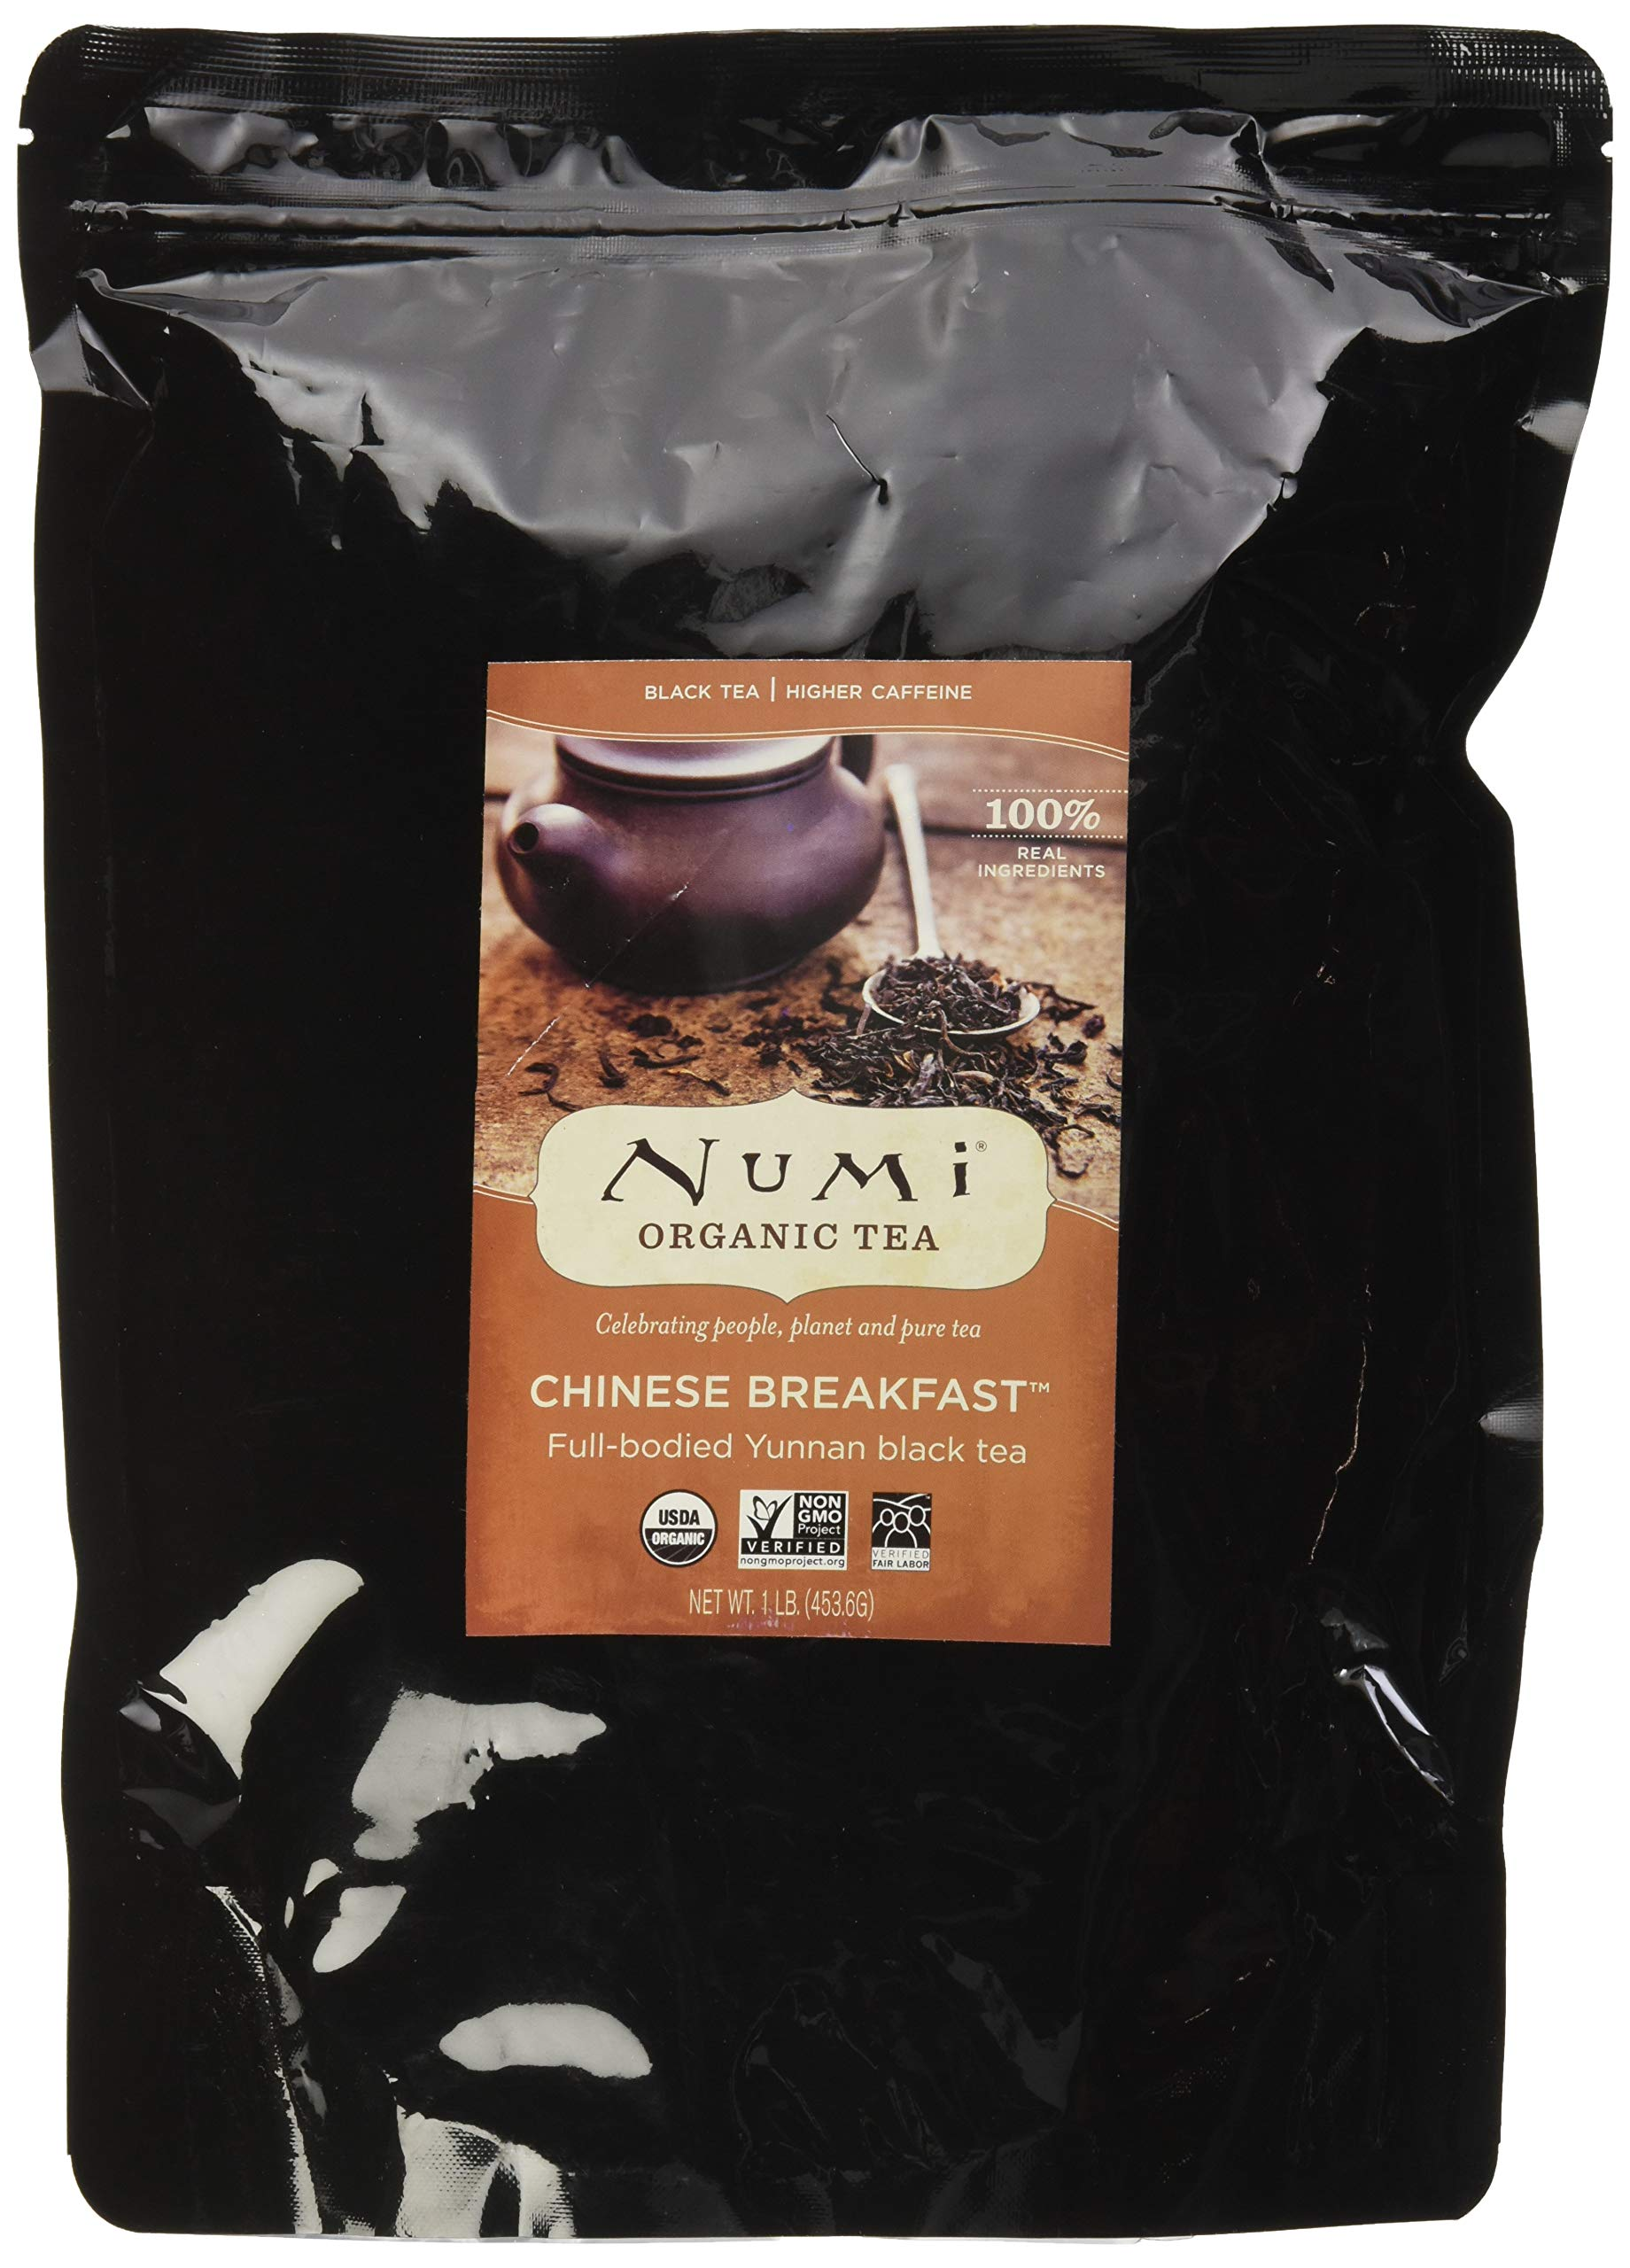 Numi Organic Tea Chinese Breakfast, 16 Ounce Pouch, Loose Leaf Yunnan Black Tea (Packaging May Vary) by Numi